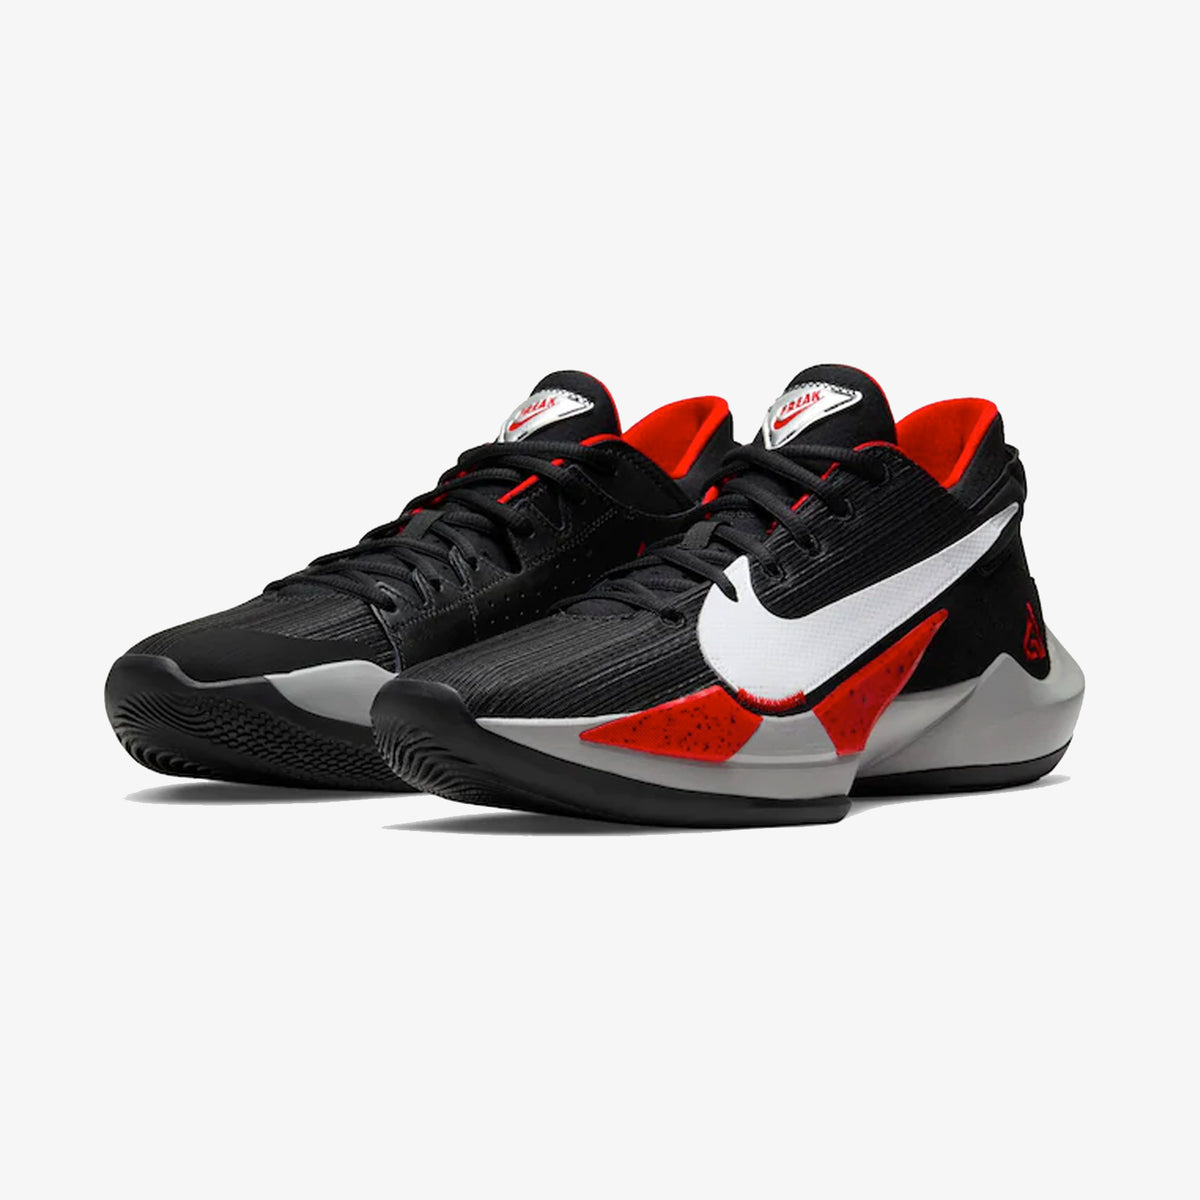 Zoom Freak 2 - 'Bred'